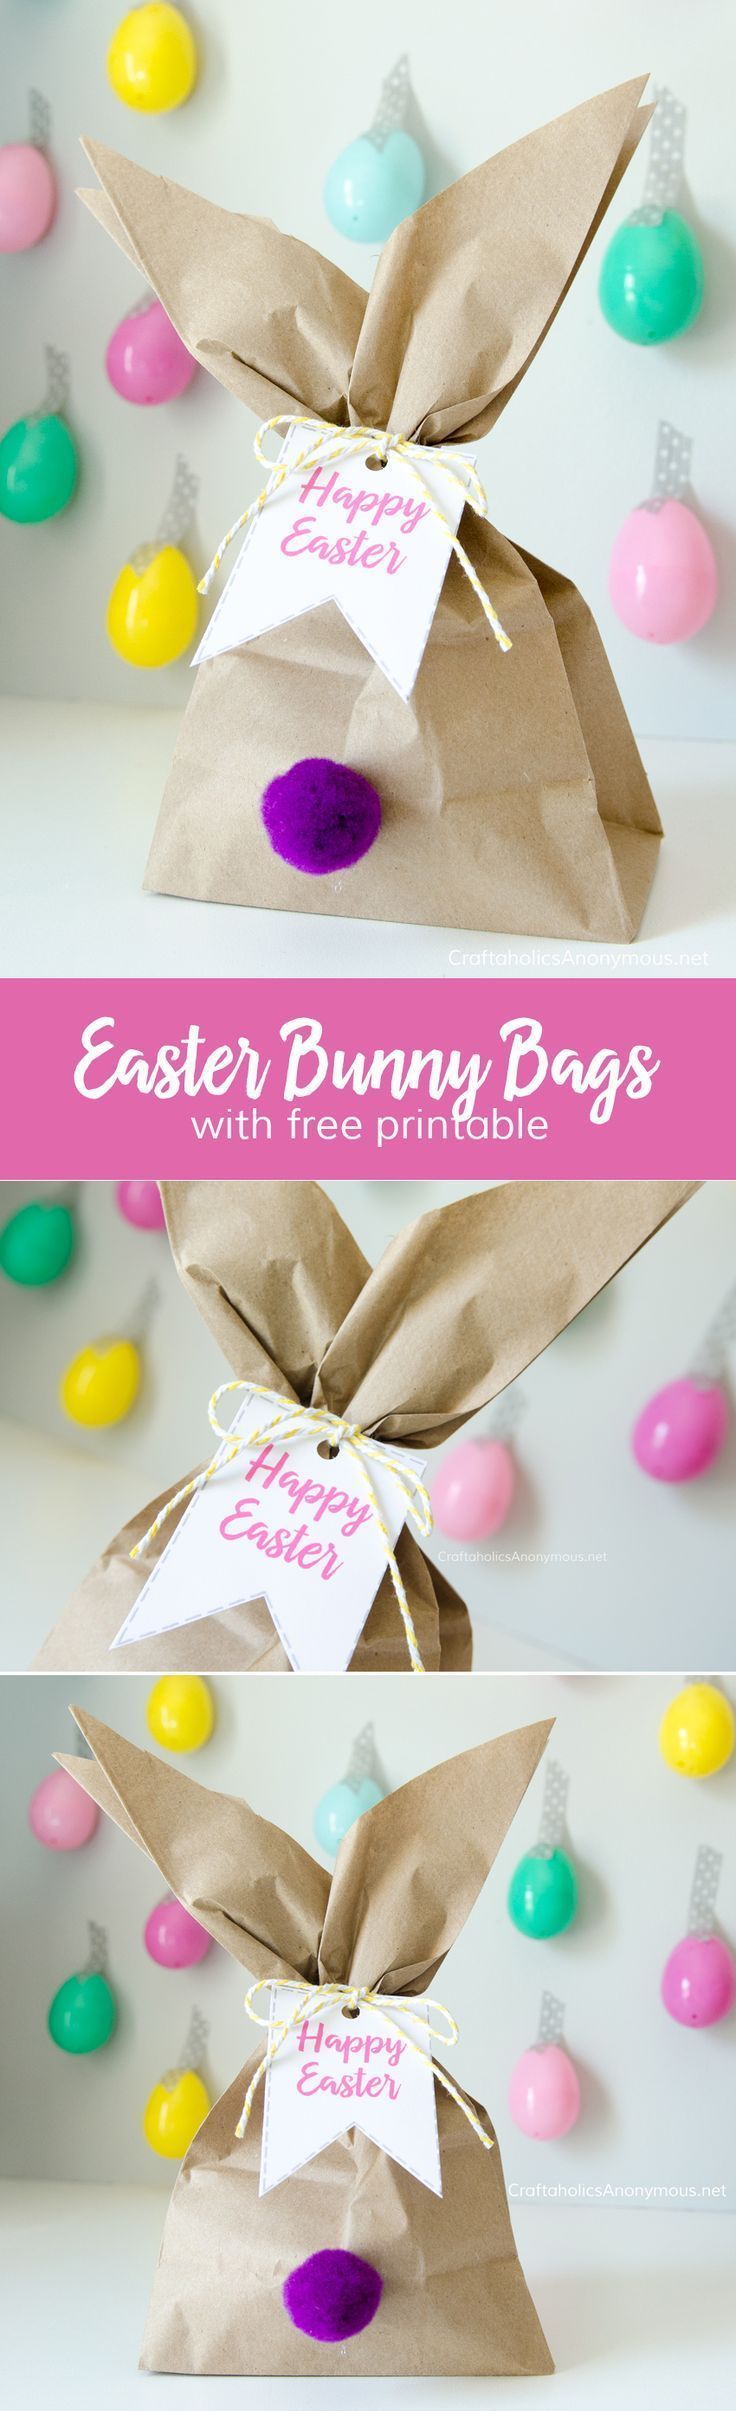 Easy Easter Bunny Gift Bags idea || Make great favors, gifts, decor ...